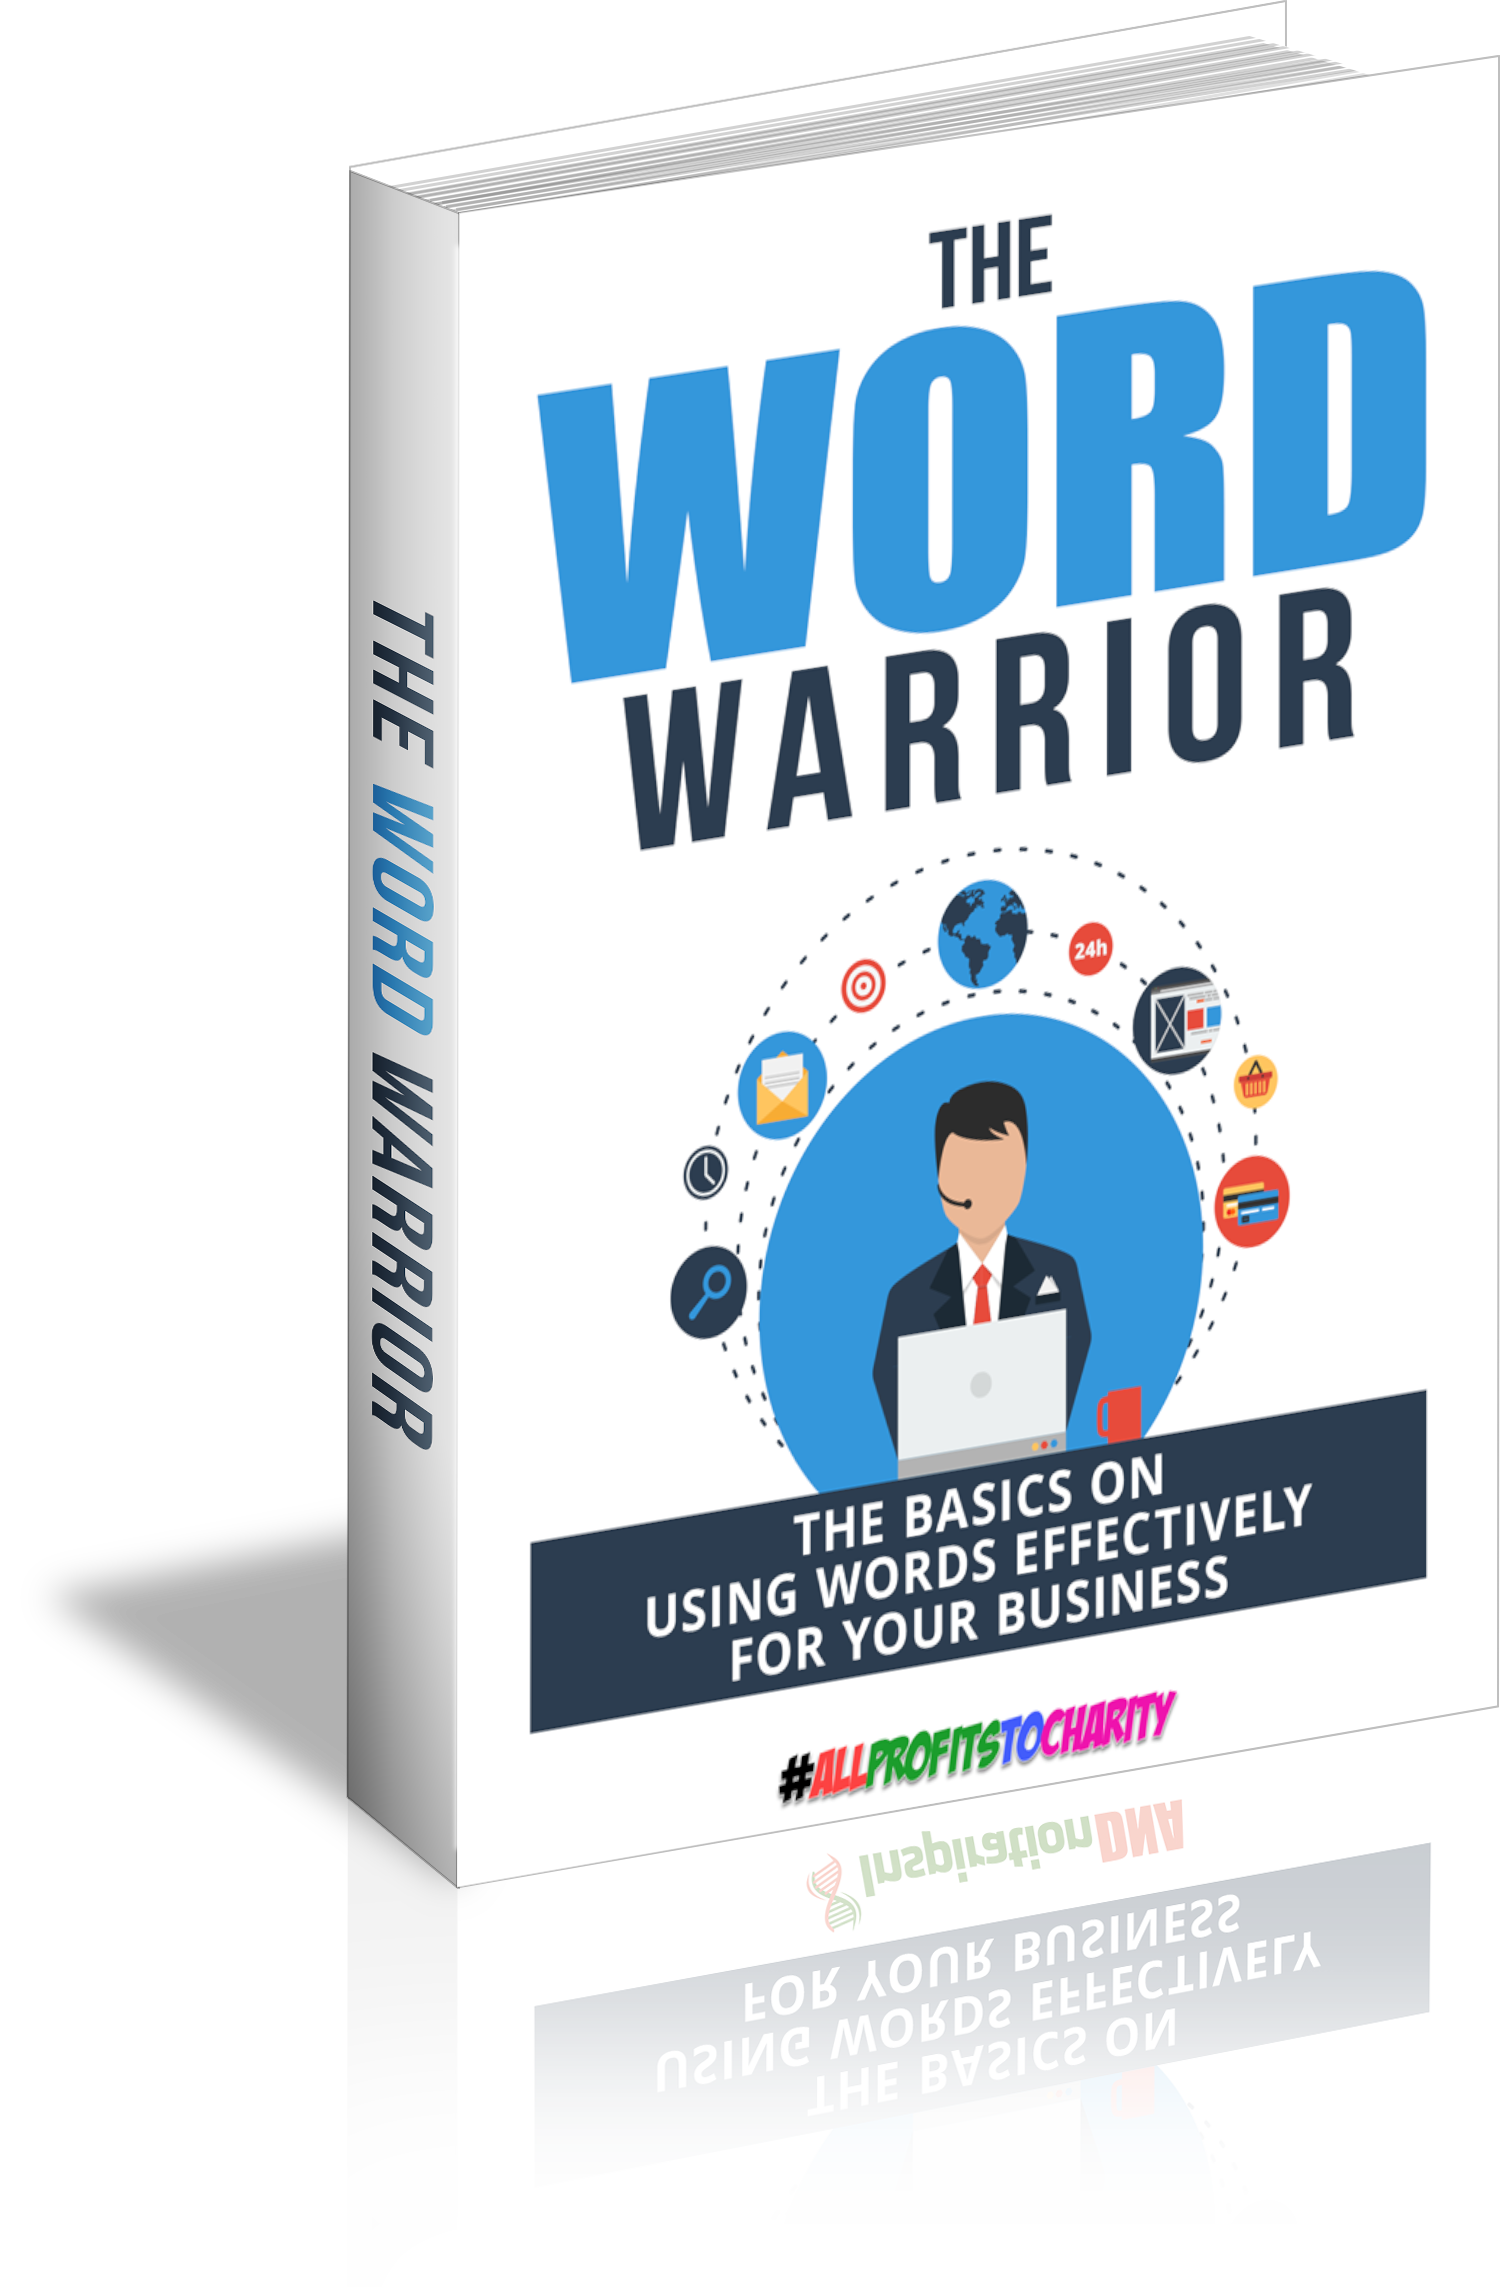 The Word Warrior cover